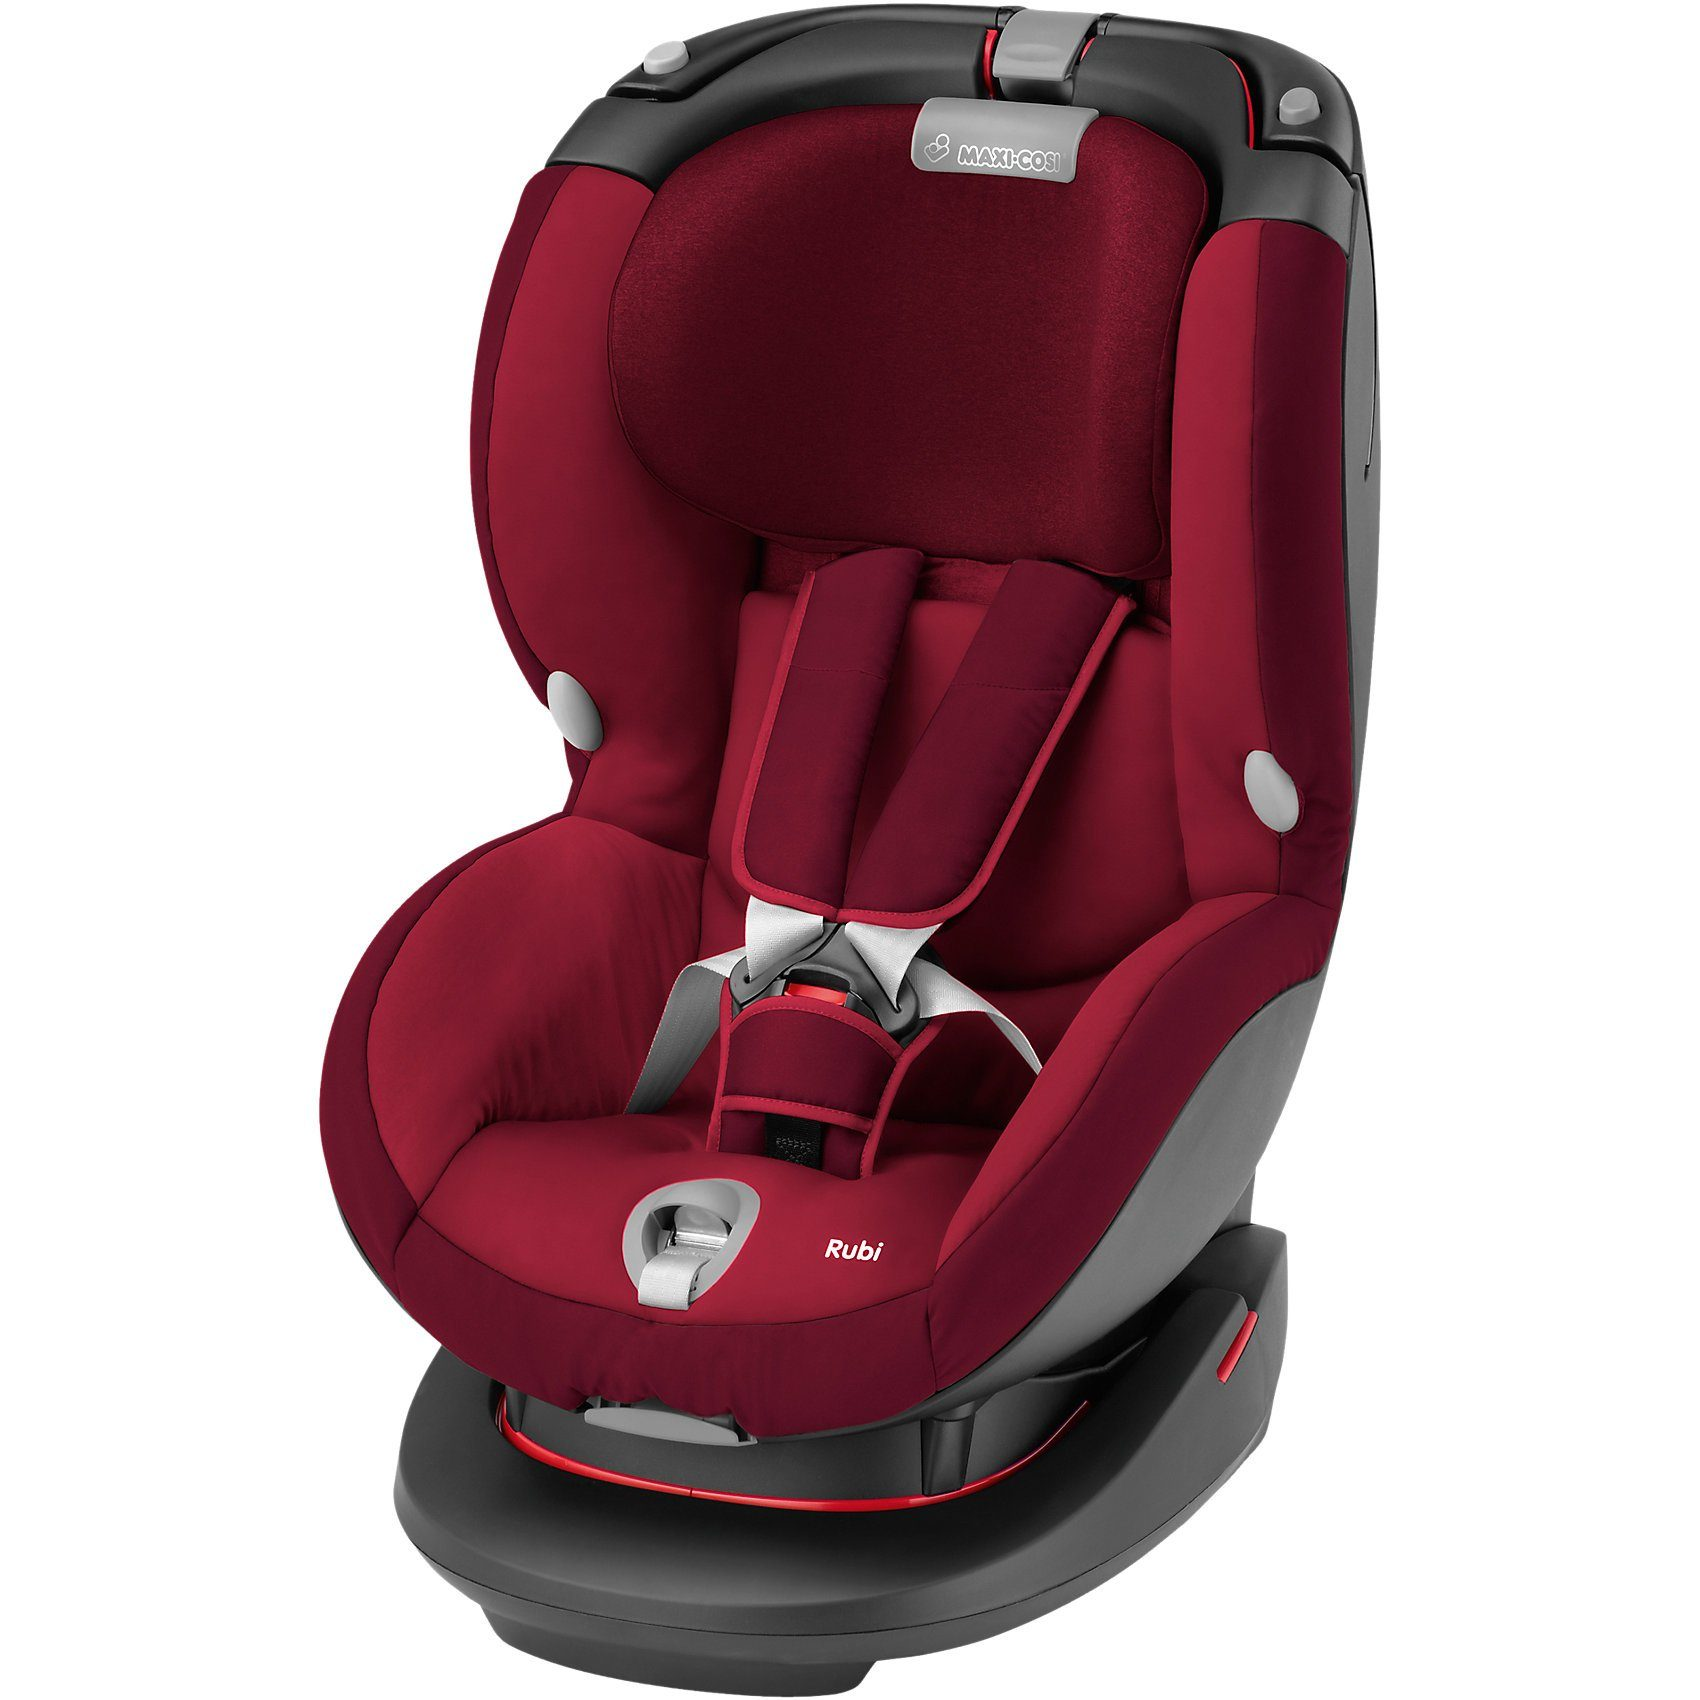 Maxi-Cosi Auto-Kindersitz Rubi XP, shadow red, 2016